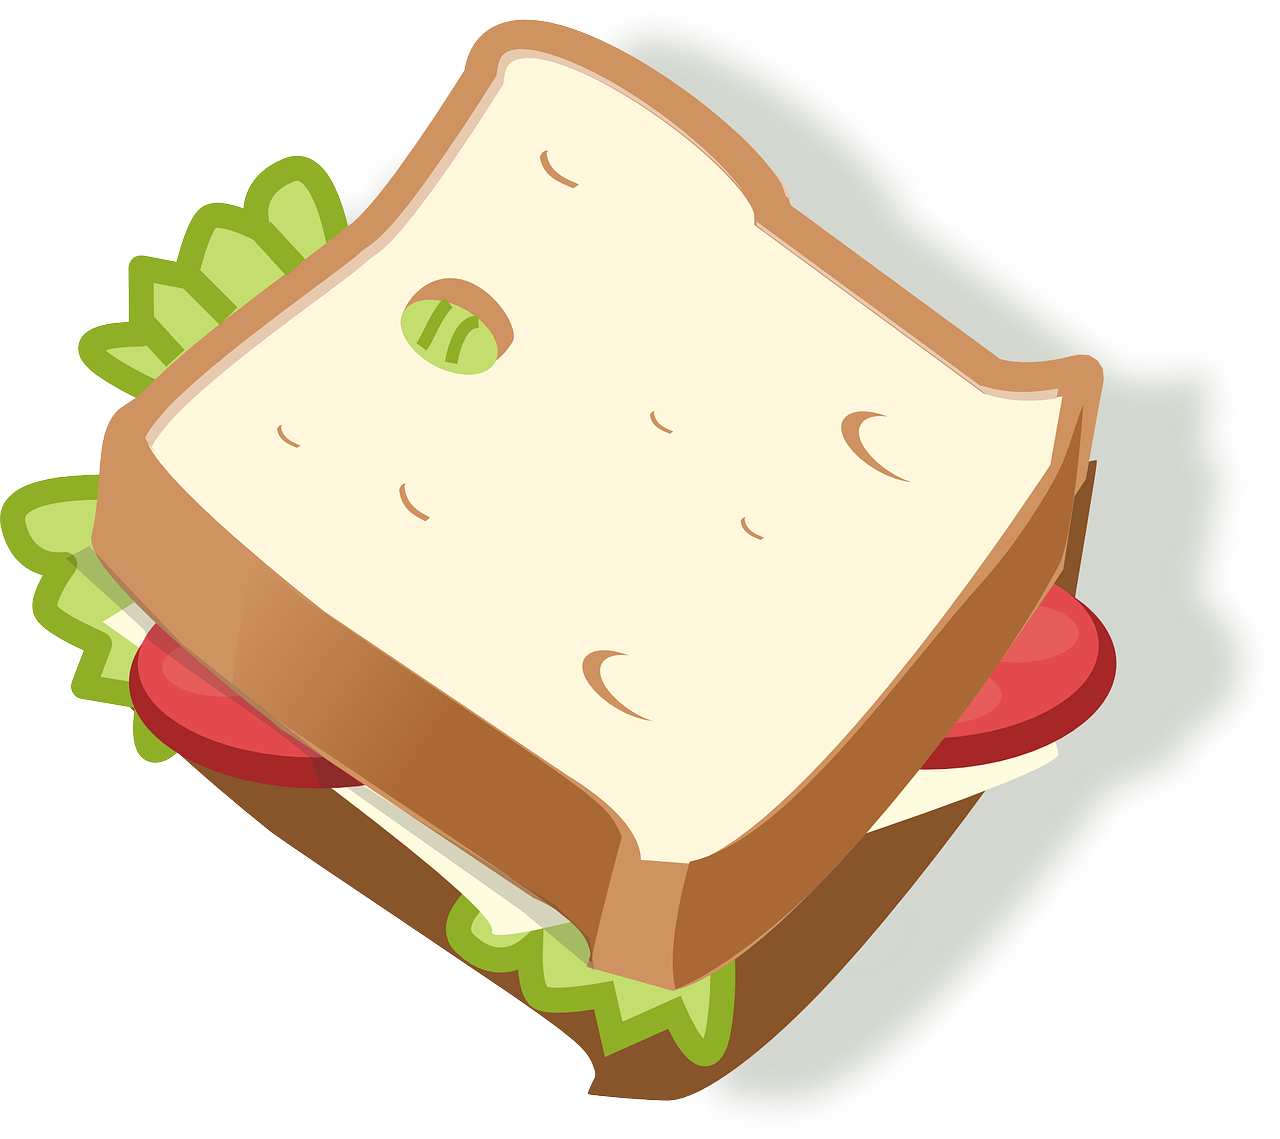 Sandwich clipart packed lunch School lunch team prefers my